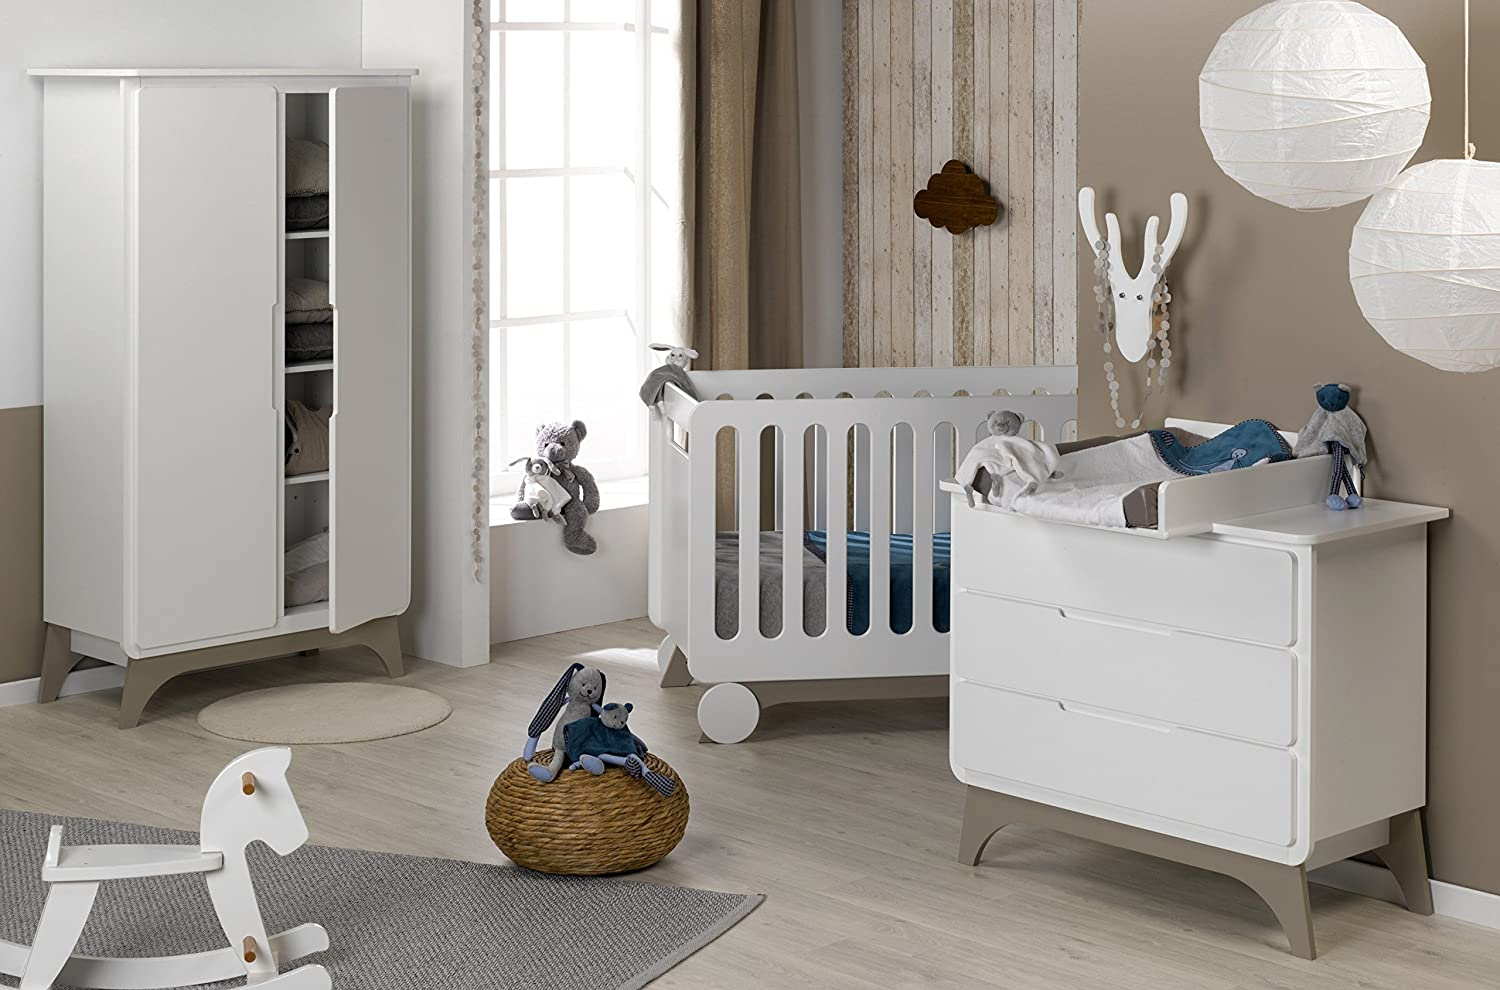 gnstige babyzimmer interesting babyzimmer komplett alpinwei mit brombeer buy now at httpswww. Black Bedroom Furniture Sets. Home Design Ideas